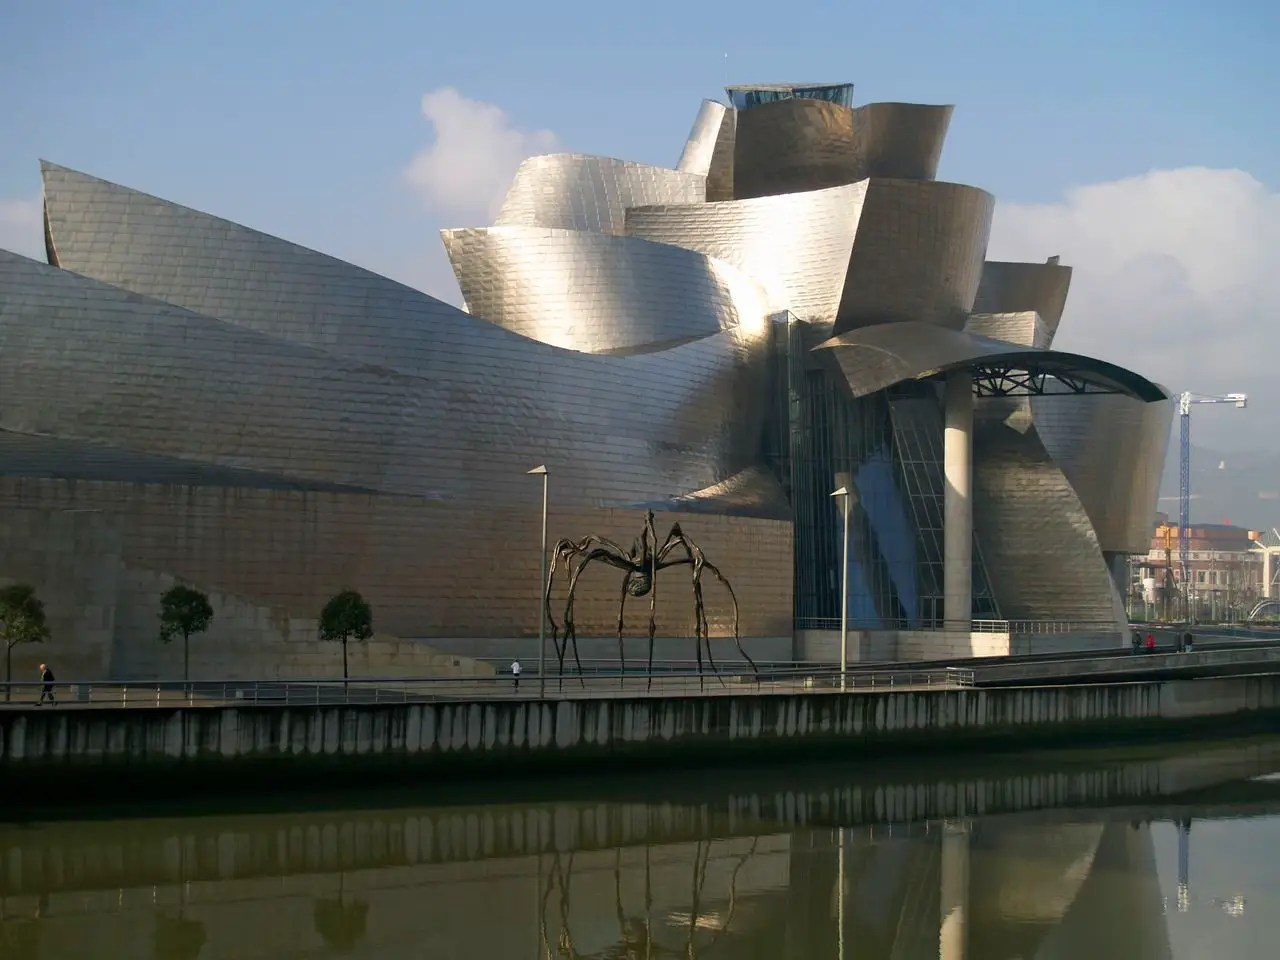 The Guggenheim Museum Bilbao in Bilbao, Spain is a work of art itself. It has also put Bilbao, an industrial city, on the map as a center for art.